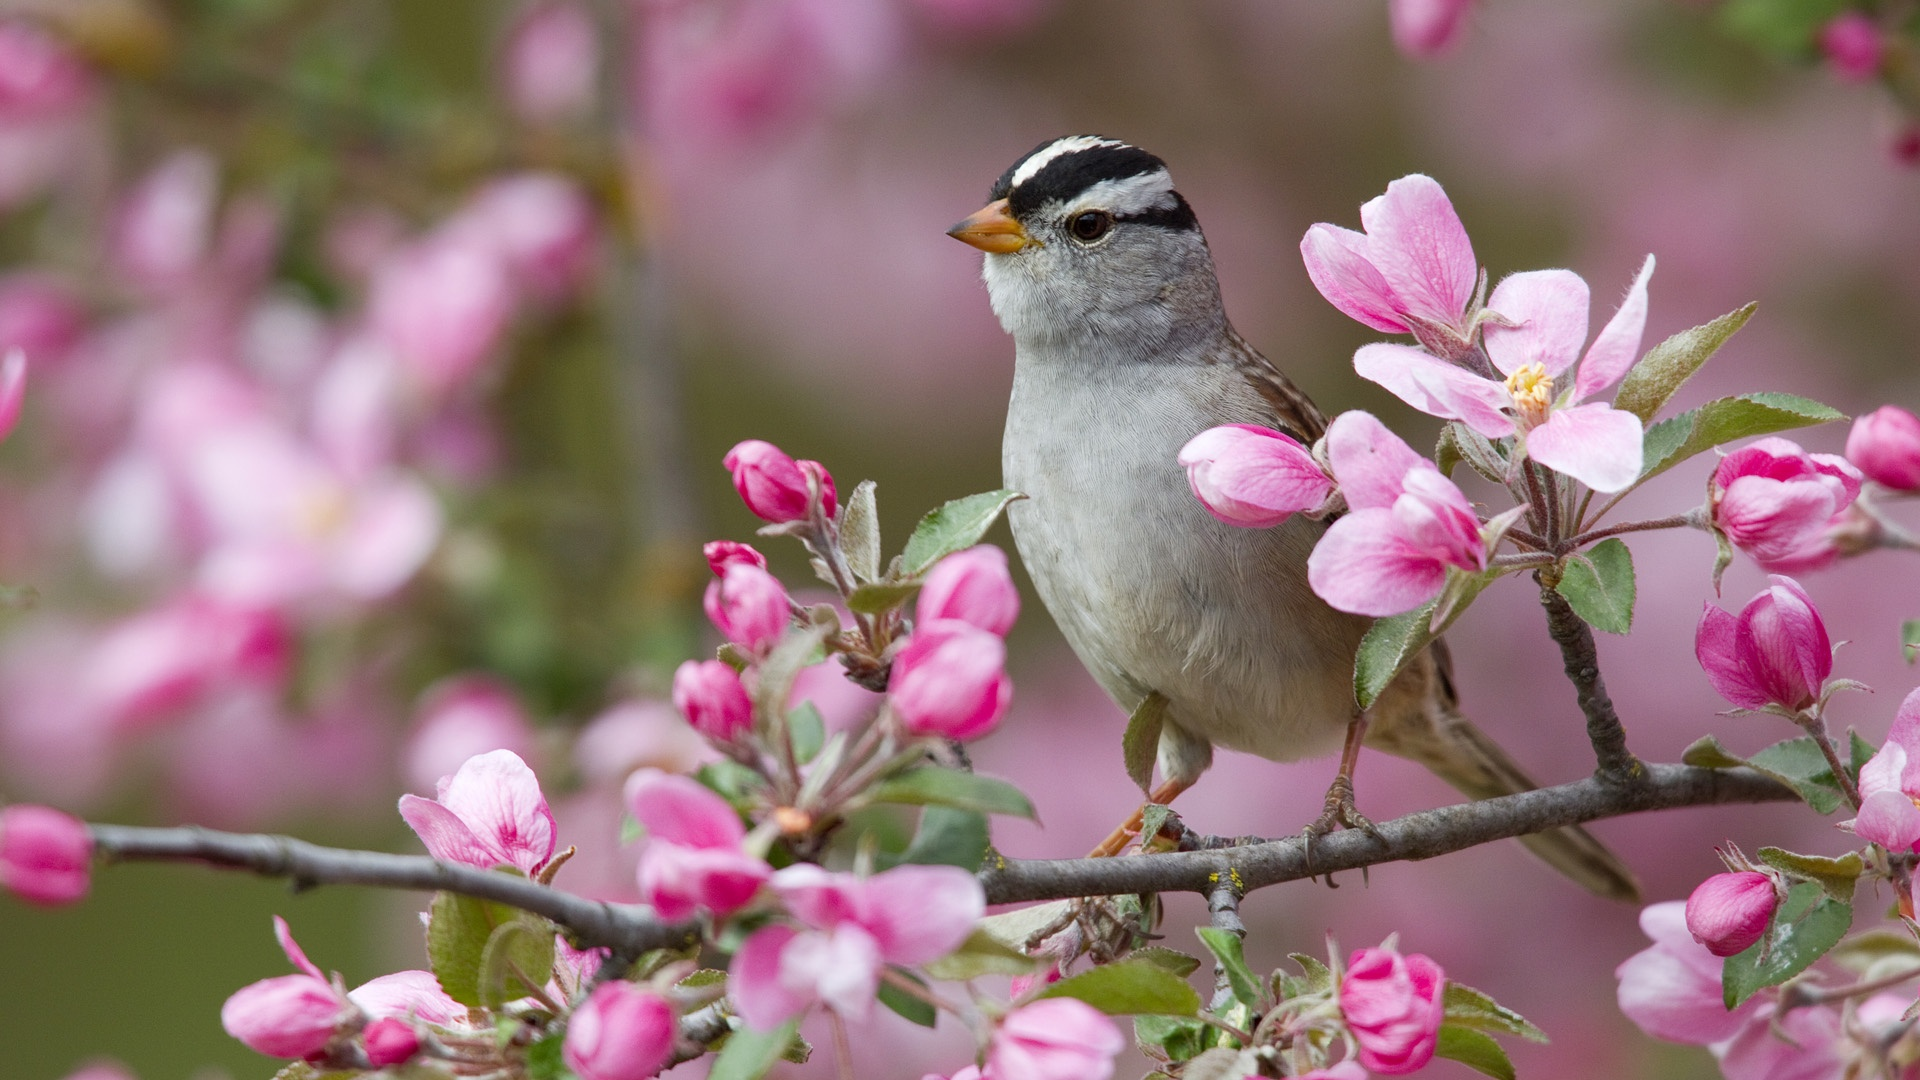 Flowers Branch Sparrow Bird 1920 x 1080 Download Close 1920x1080